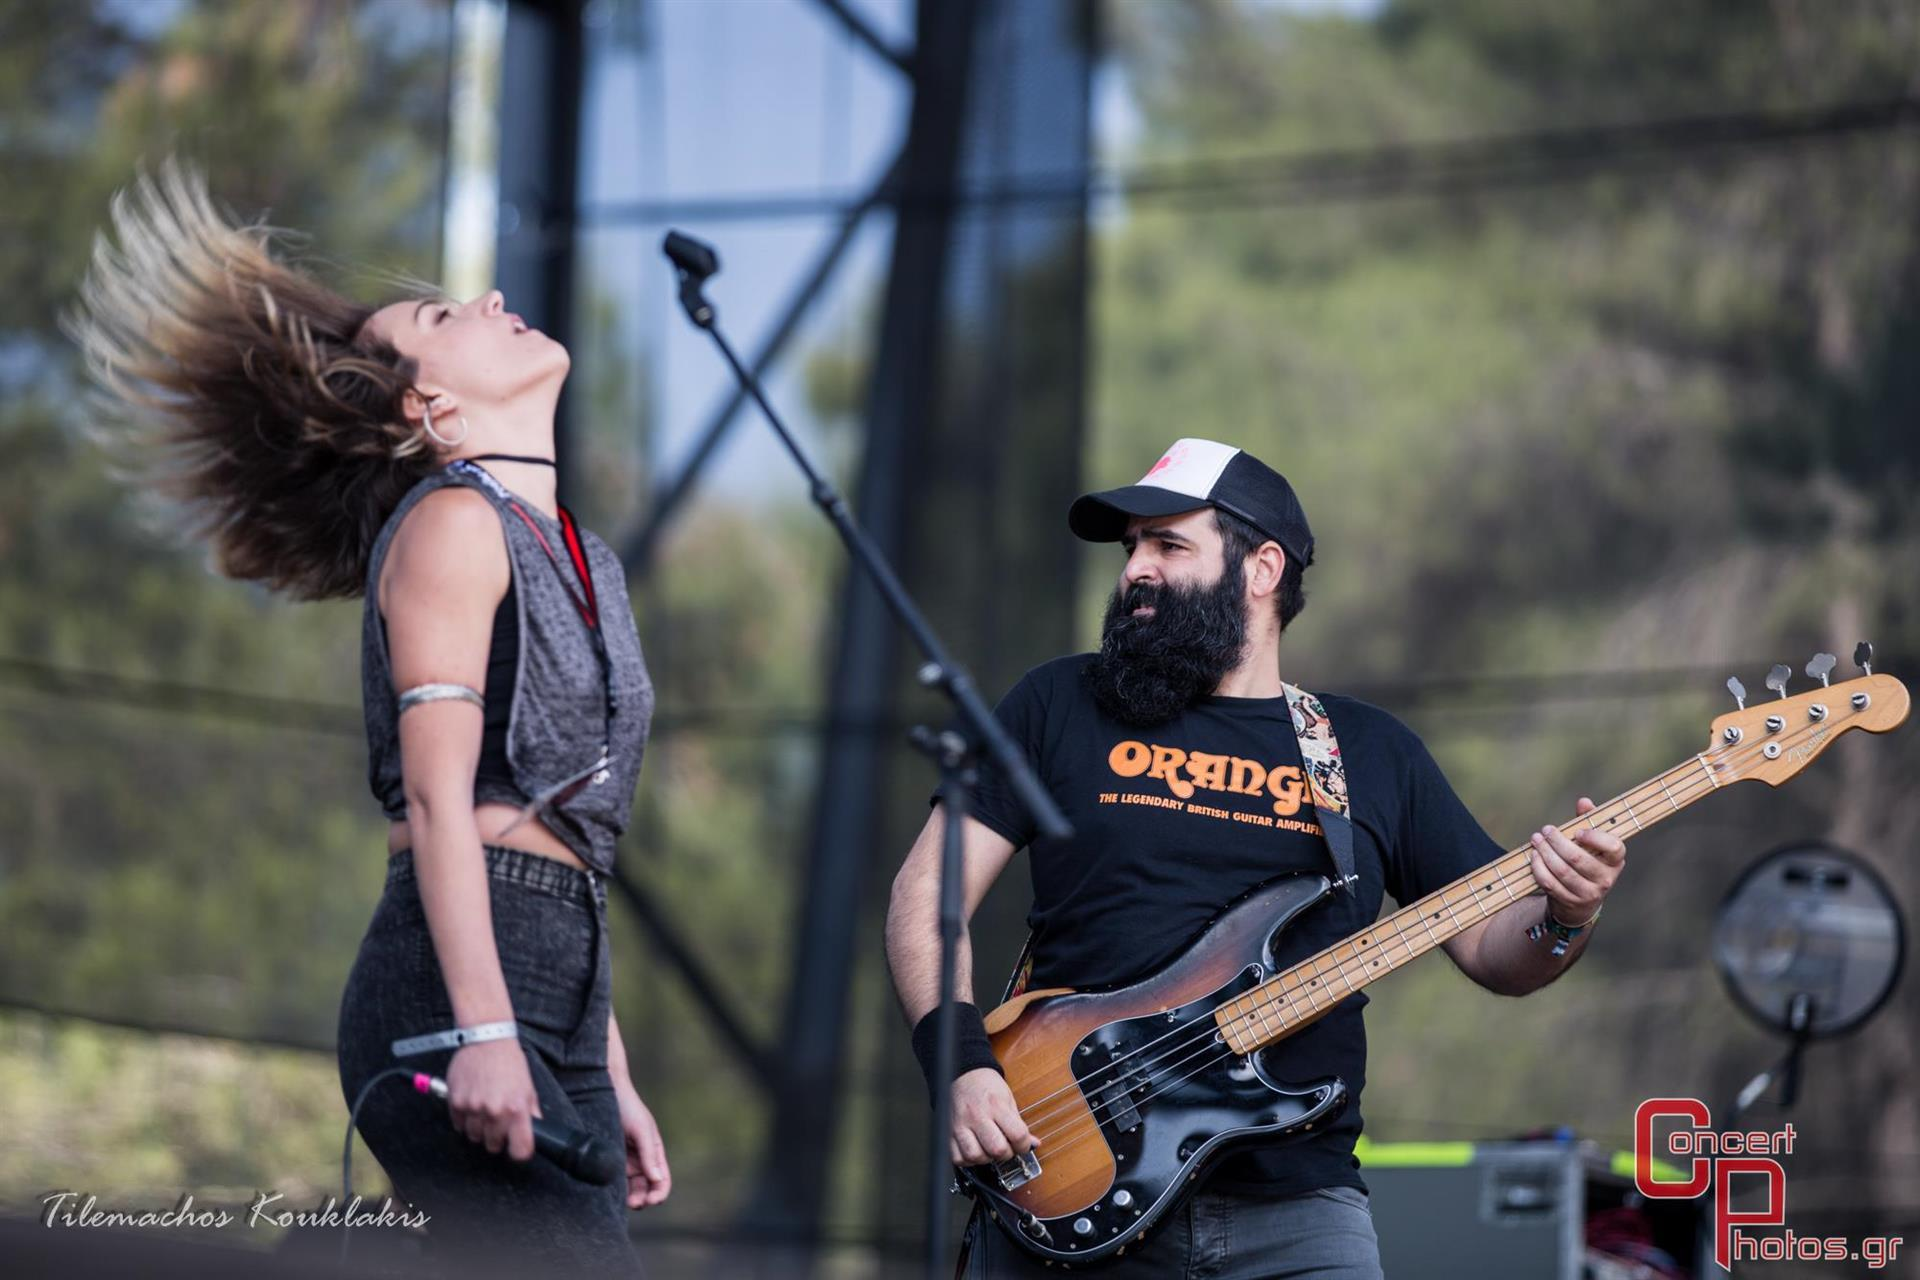 Rockwave 2015 - Black Keys-Black Angels-1000mods-The Big Nose Attack-Puta Volcano-Rockwave 2015 - Black Keys-Black Angels-1000mods photographer:  - 02_Puta Volcano_07